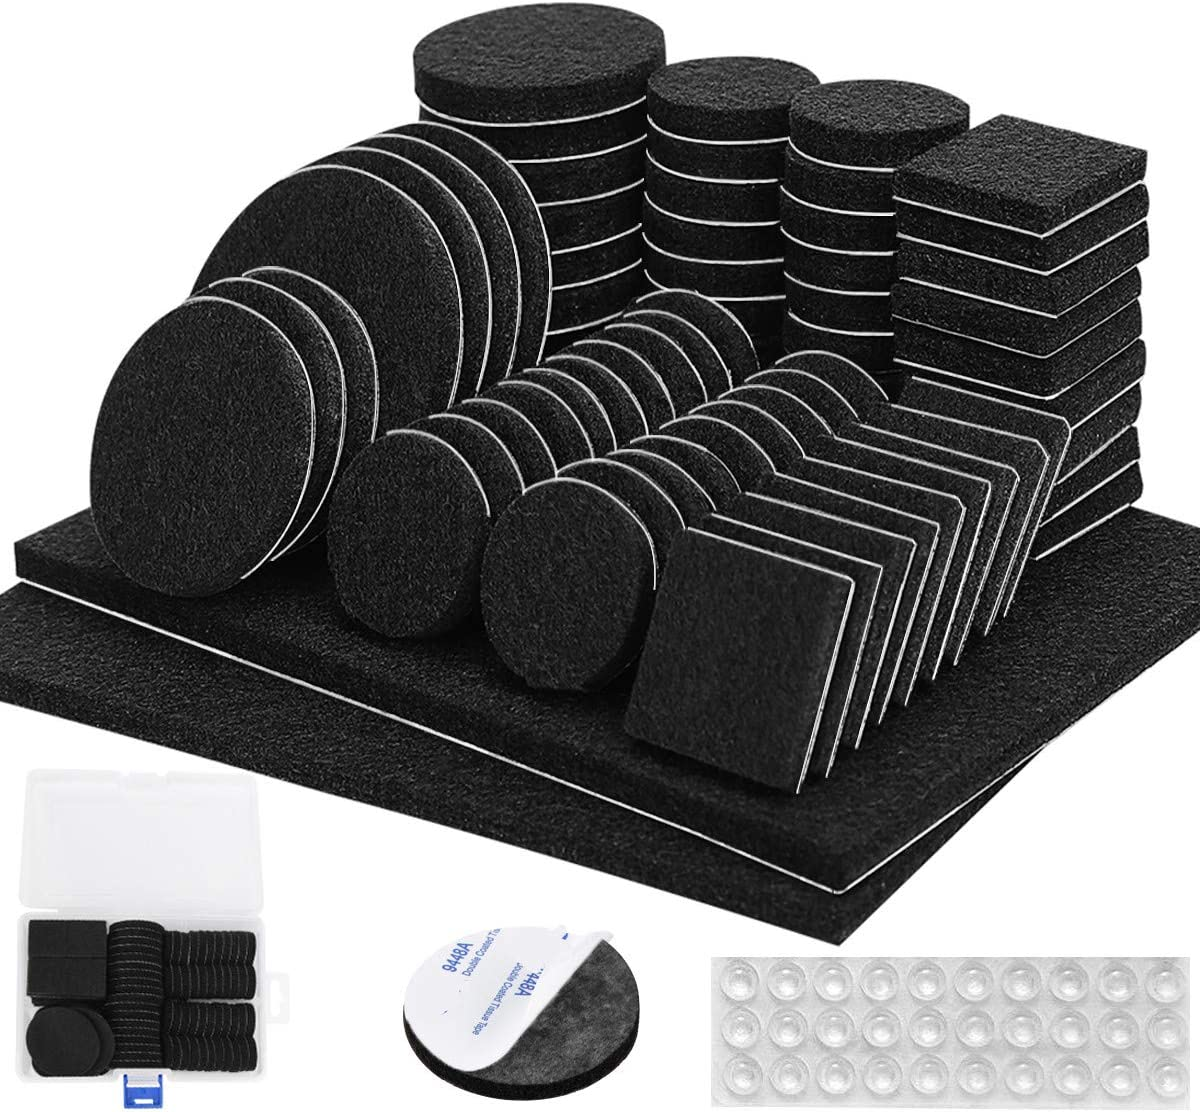 Furniture Pads Black 136 Pieces Pack Felt Furniture Pads Felt Pads 5mm Thick Anti Scratch Floor Protectors for Chair Legs Feet with Case 30 Rubber Bumpers for Hardwood Tile Wood Floor Self Adhesive